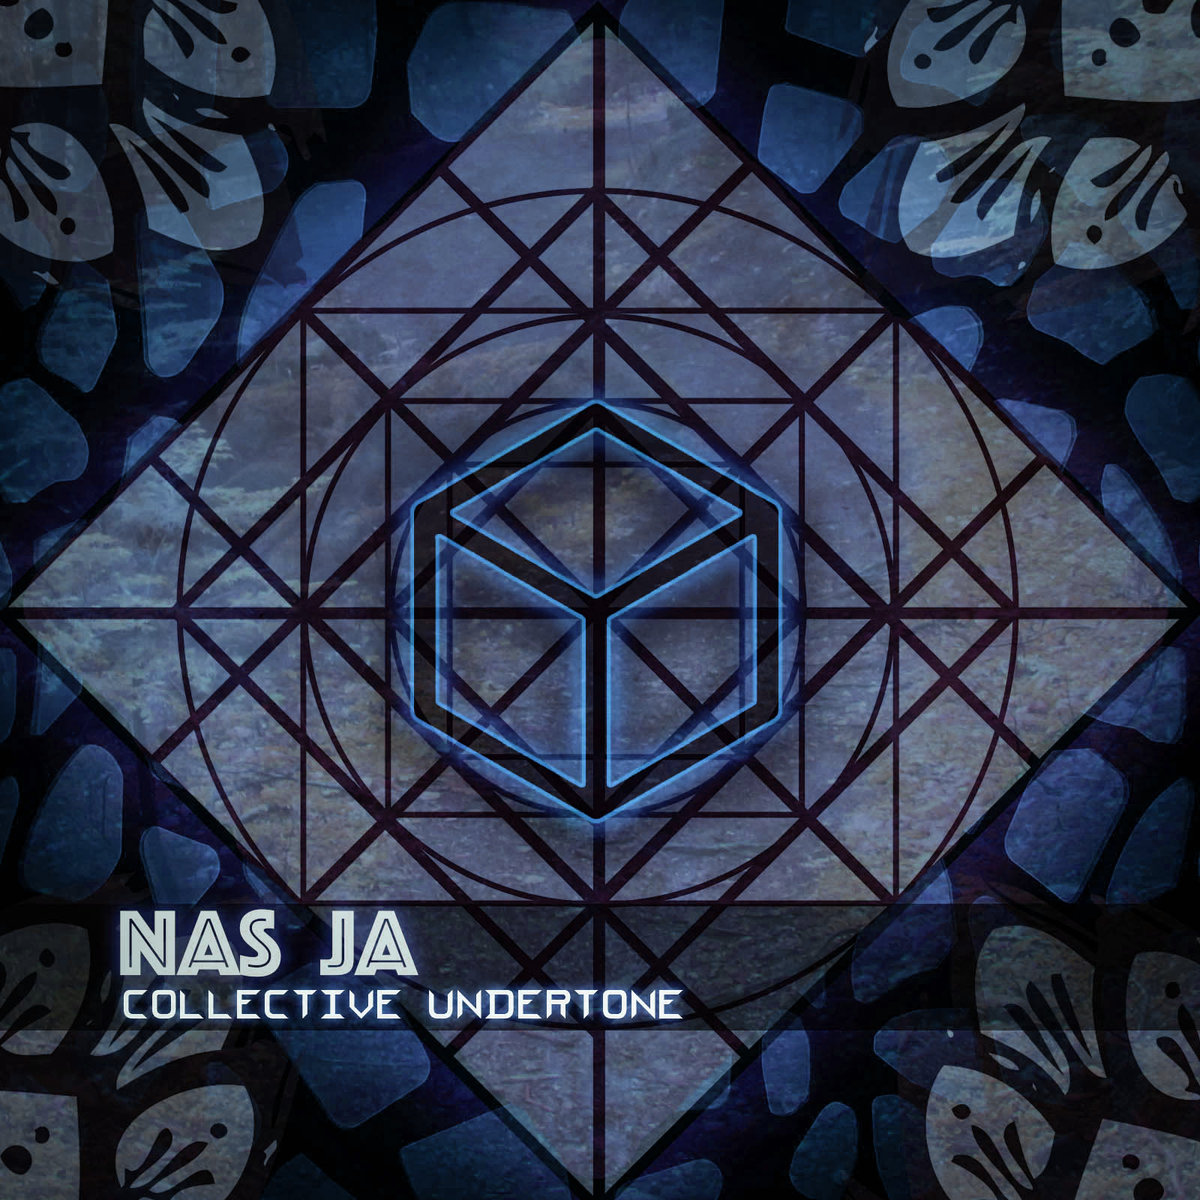 Nas-Ja - Collective Undertone @ 'Collective Undertone' album (bass, electronic)